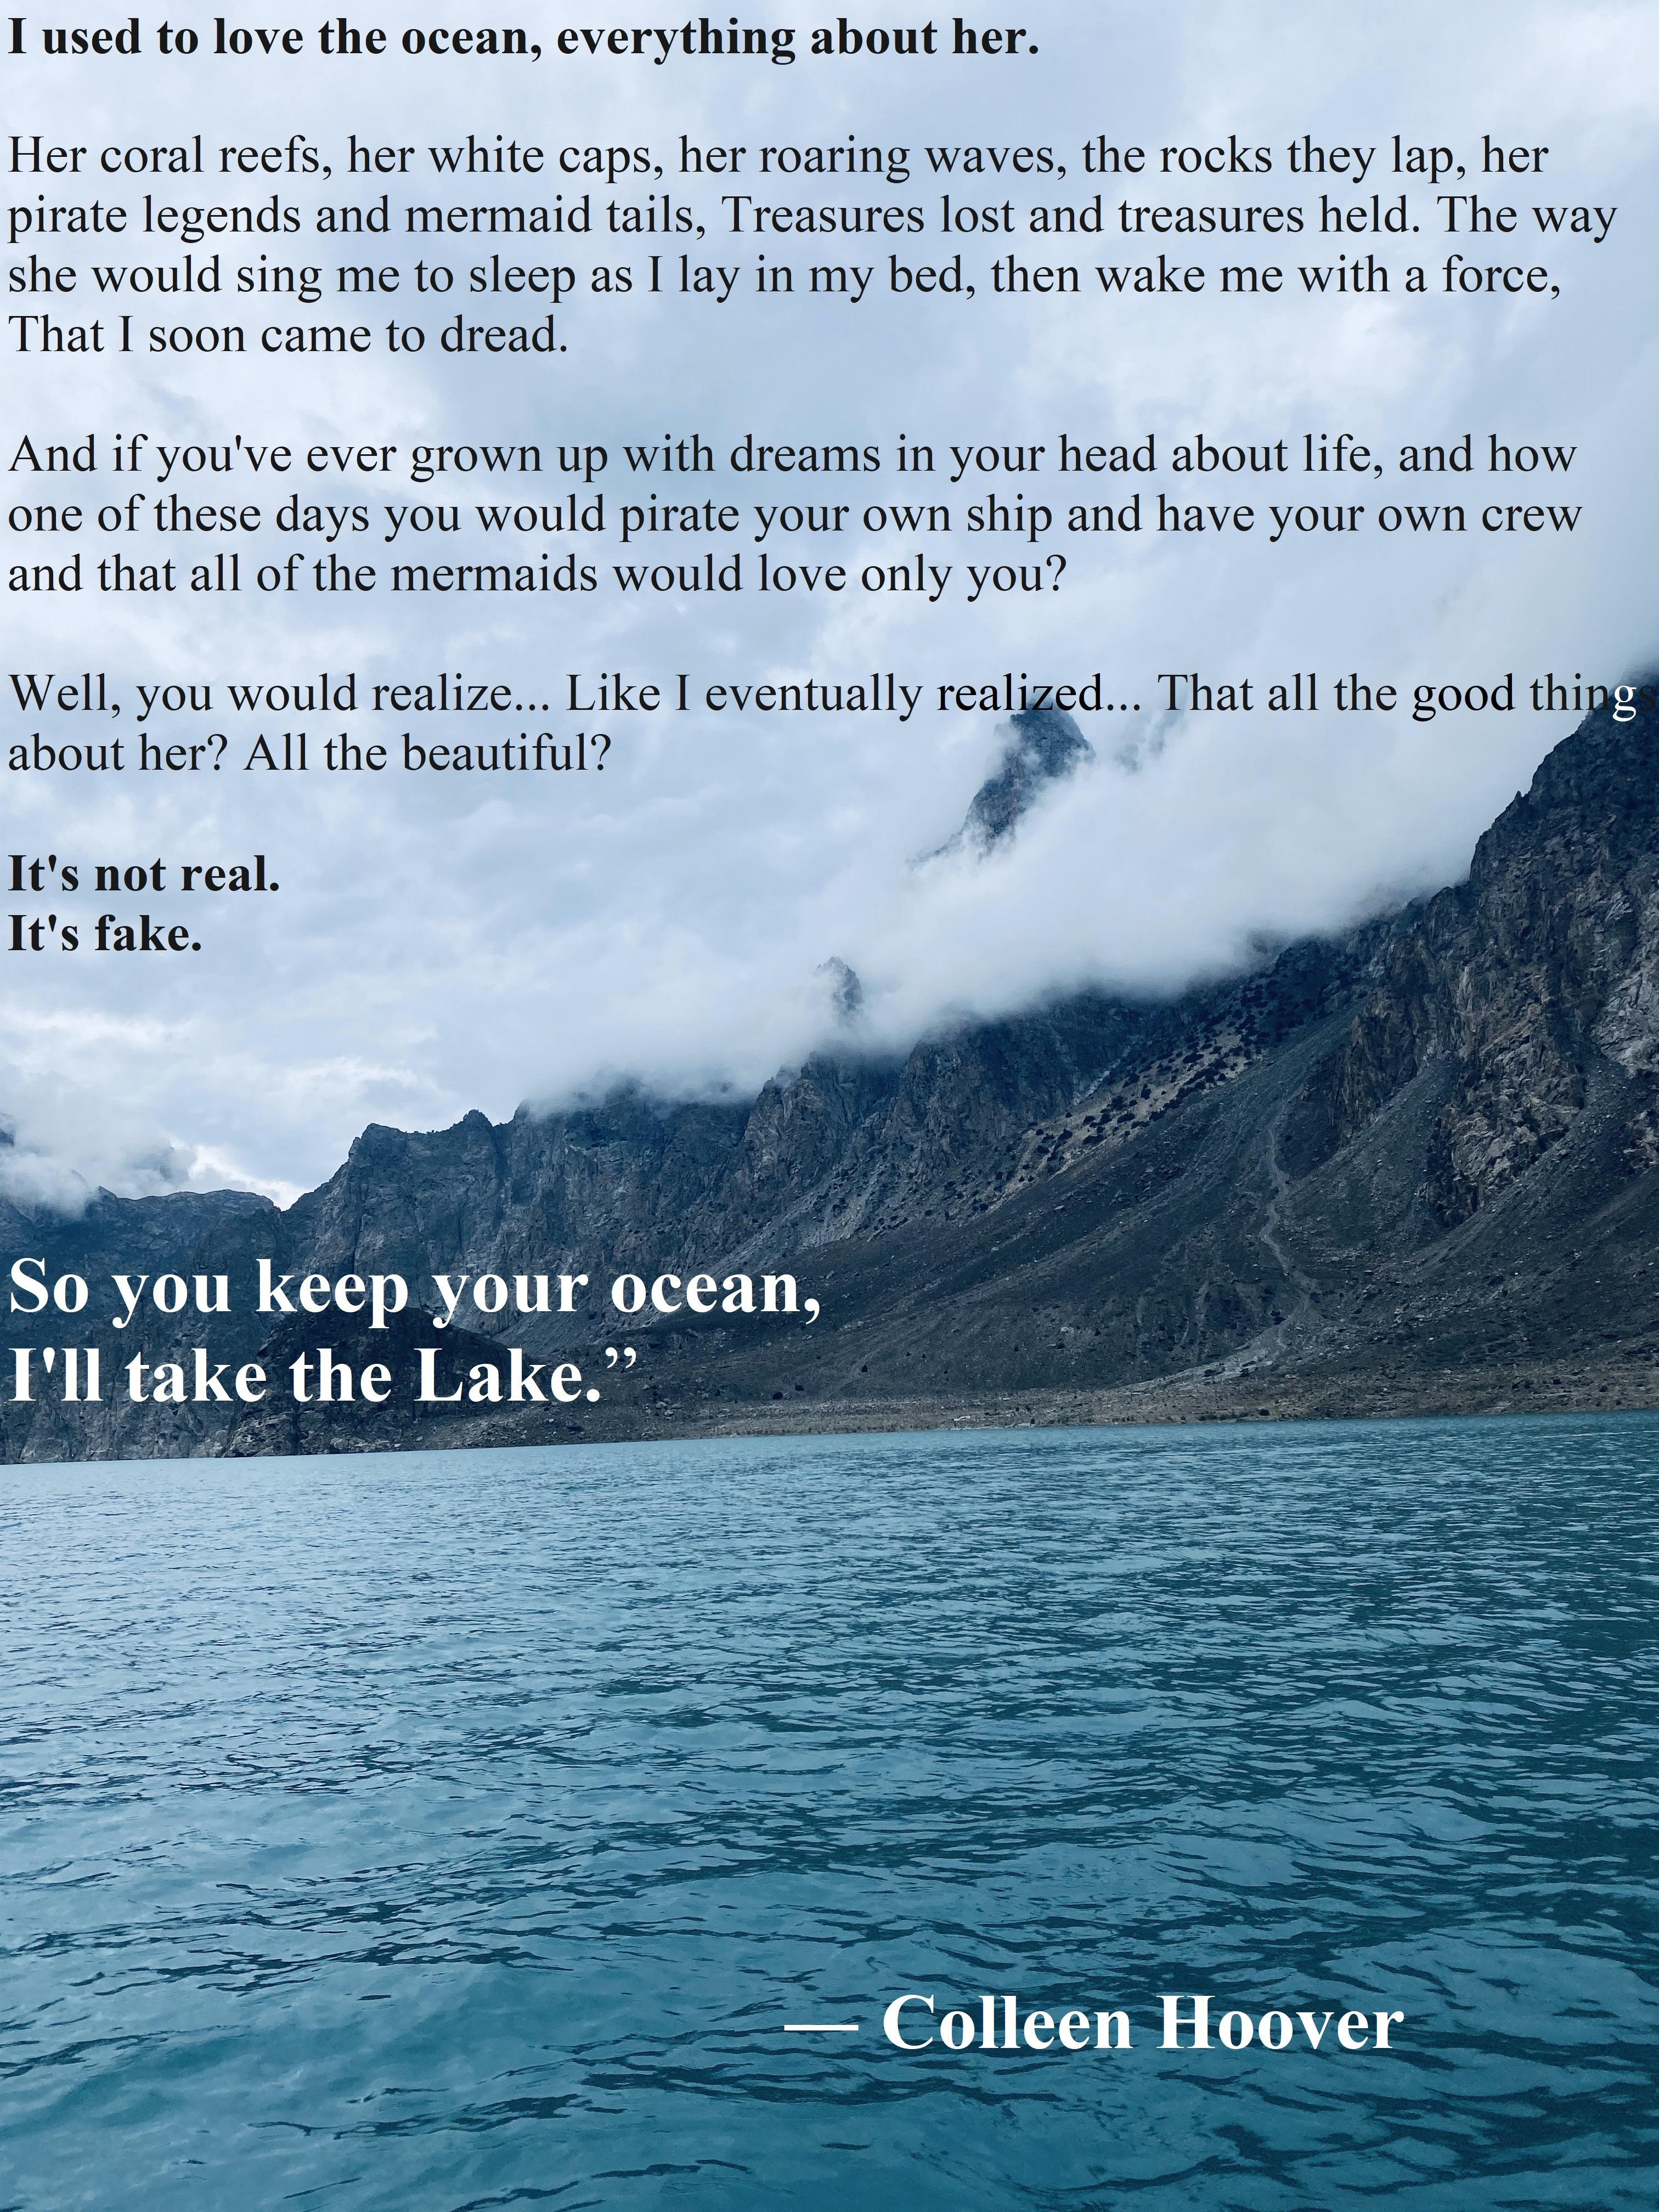 """So you keep your ocean, I'll take the Lake."" – Colleen Hoover (3024×4032)"